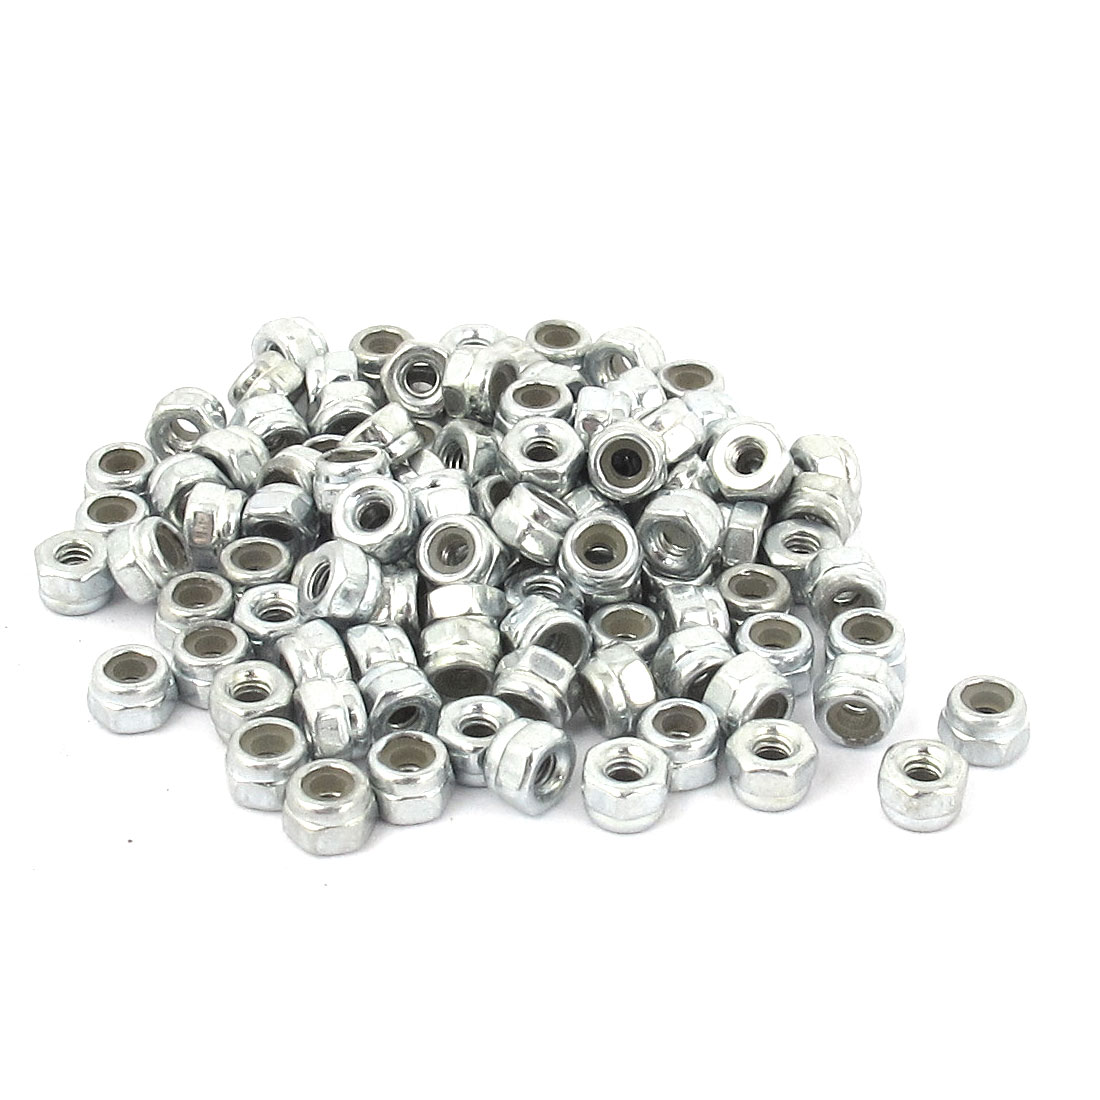 M2 Zinc Plated Nylock Self-Locking Nylon Insert Hex Lock Nuts 100pcs